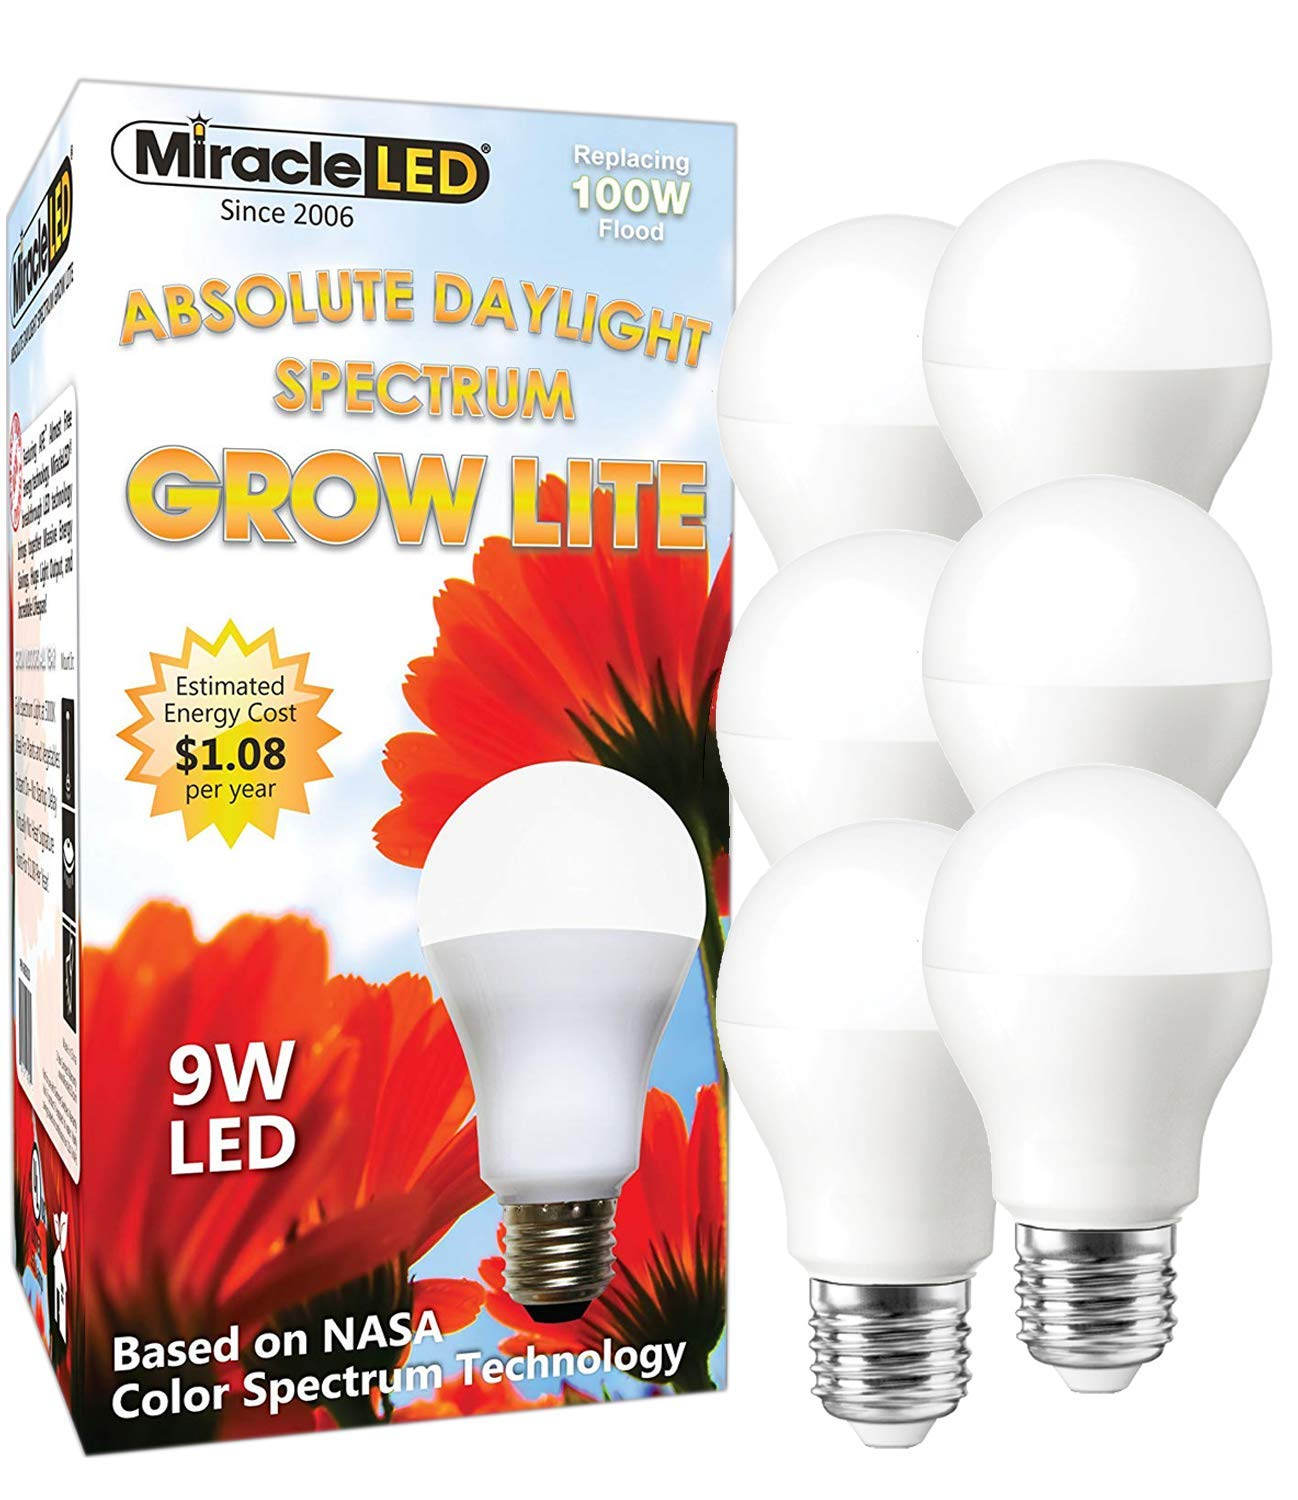 MiracleLED 604863 Absolute Daylight Spectrum 6-Pack, Replace 100W Grow Light, Full Bulb by MiracleLED